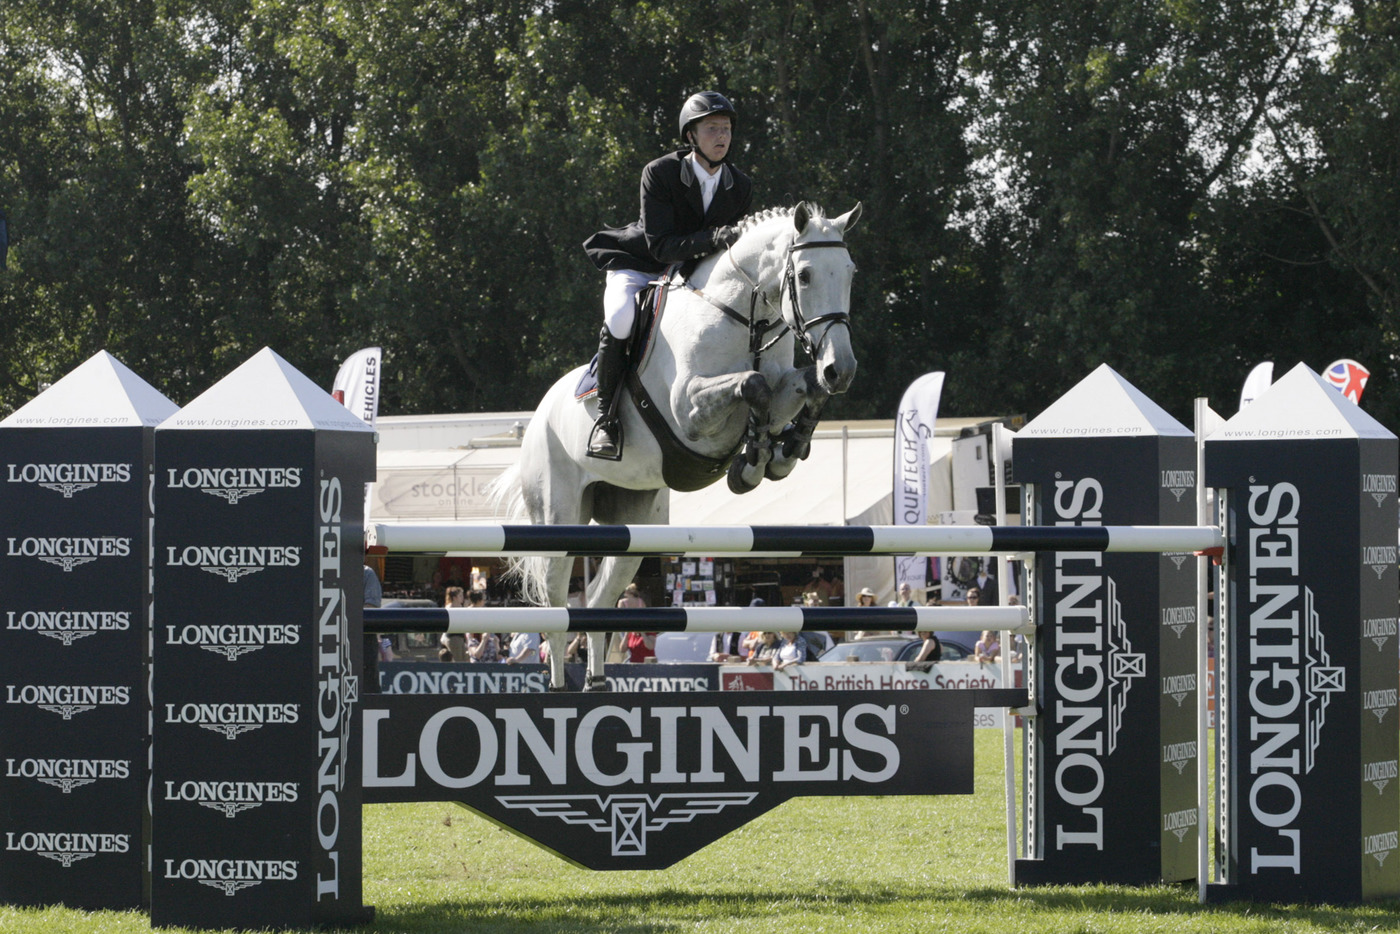 Longines Show Jumping Event: Nations Cup – Longines Press Award for Elegance: Intermediate ranking 7